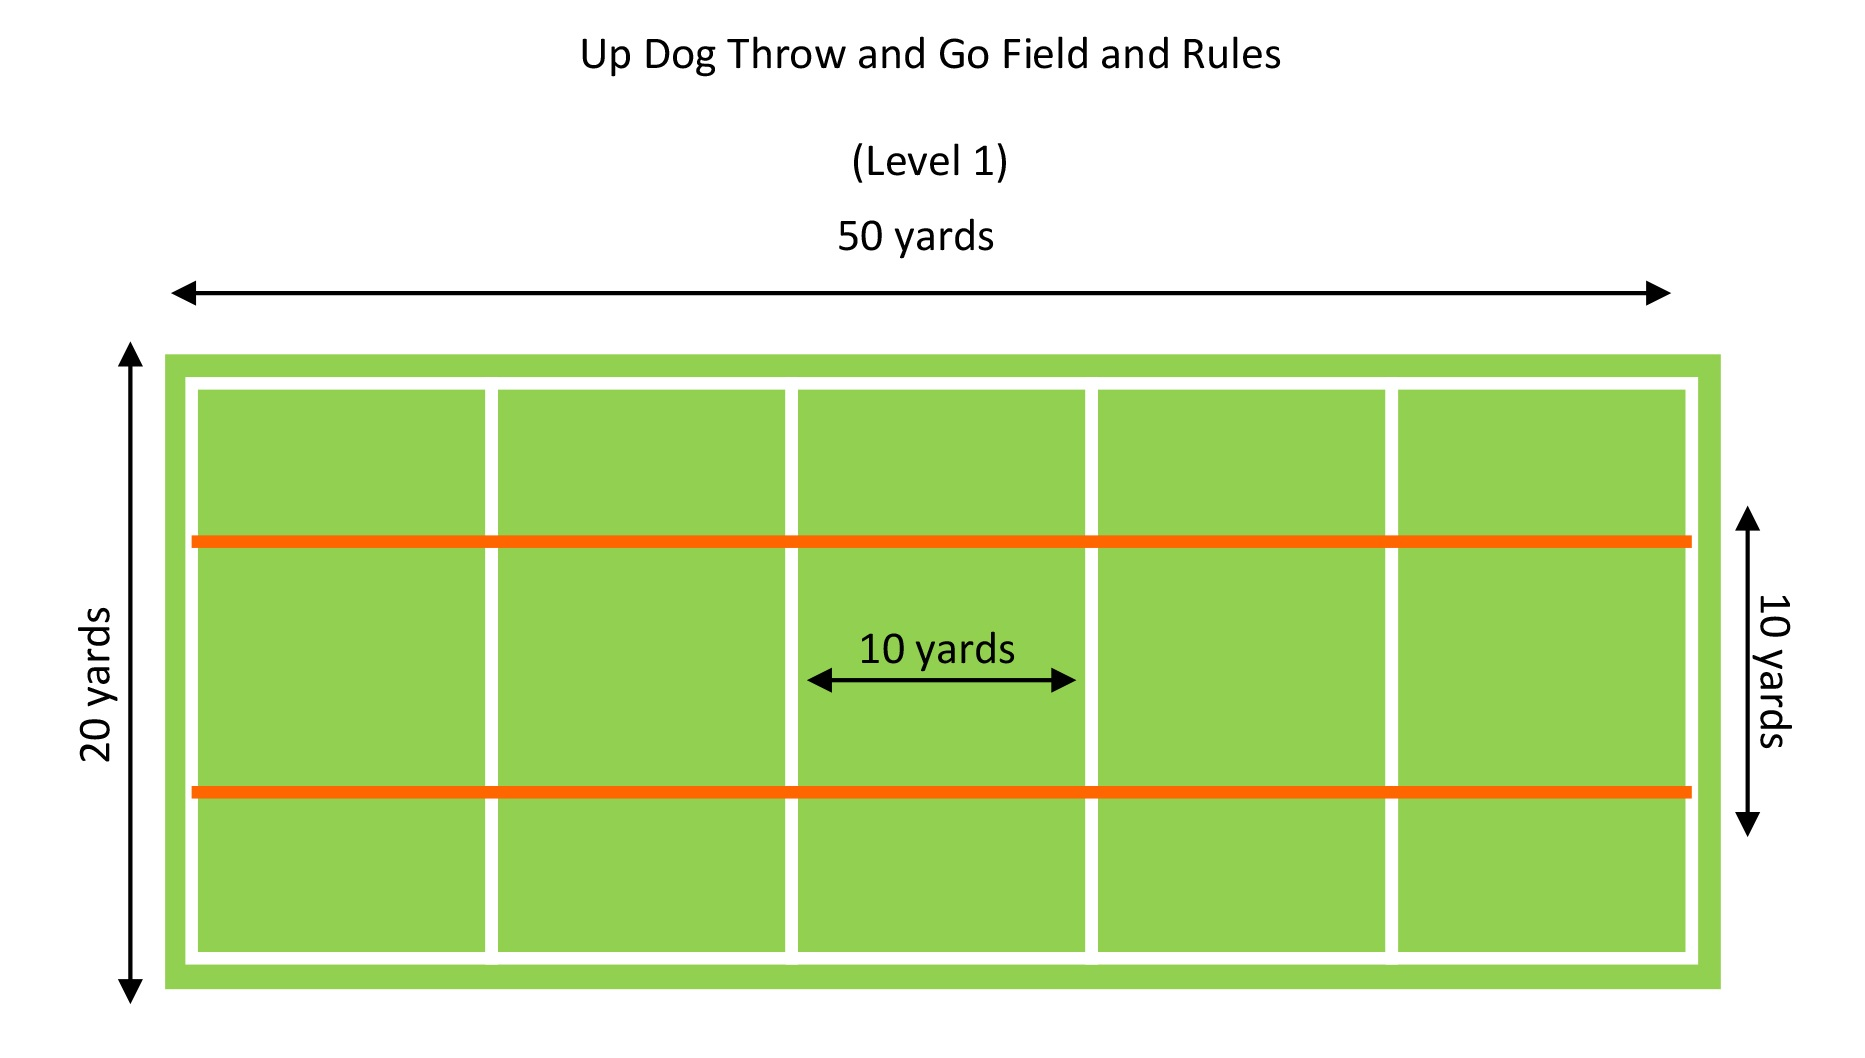 Up-Dog-Throw-and-Go-Field-and-Rules-Level-1-v-3.0-eff-June-2018+%281%29-1.jpg